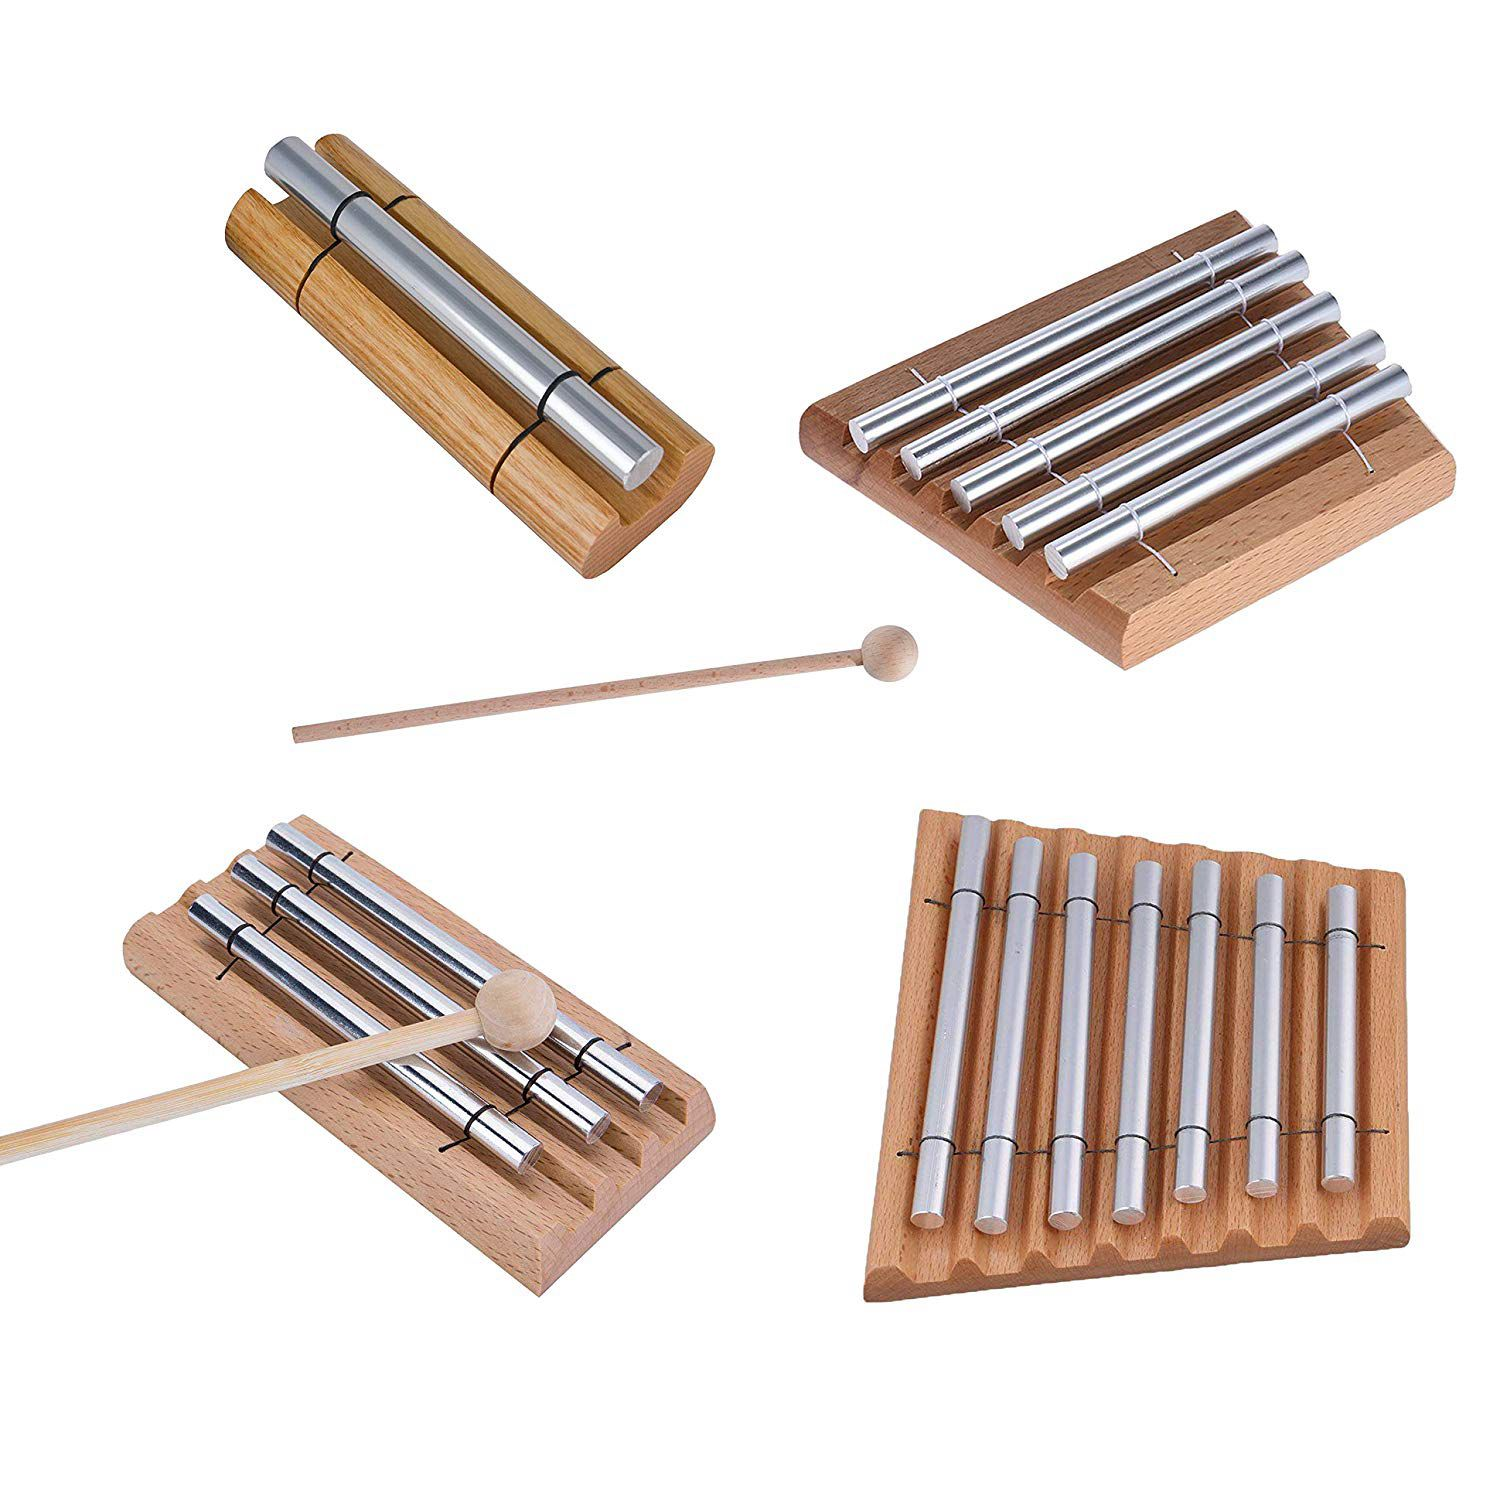 2 Pair Wood Mallets Percussion Sticks For Energy Chime, Xylophone, Wood Block, Glockenspiel And Bells